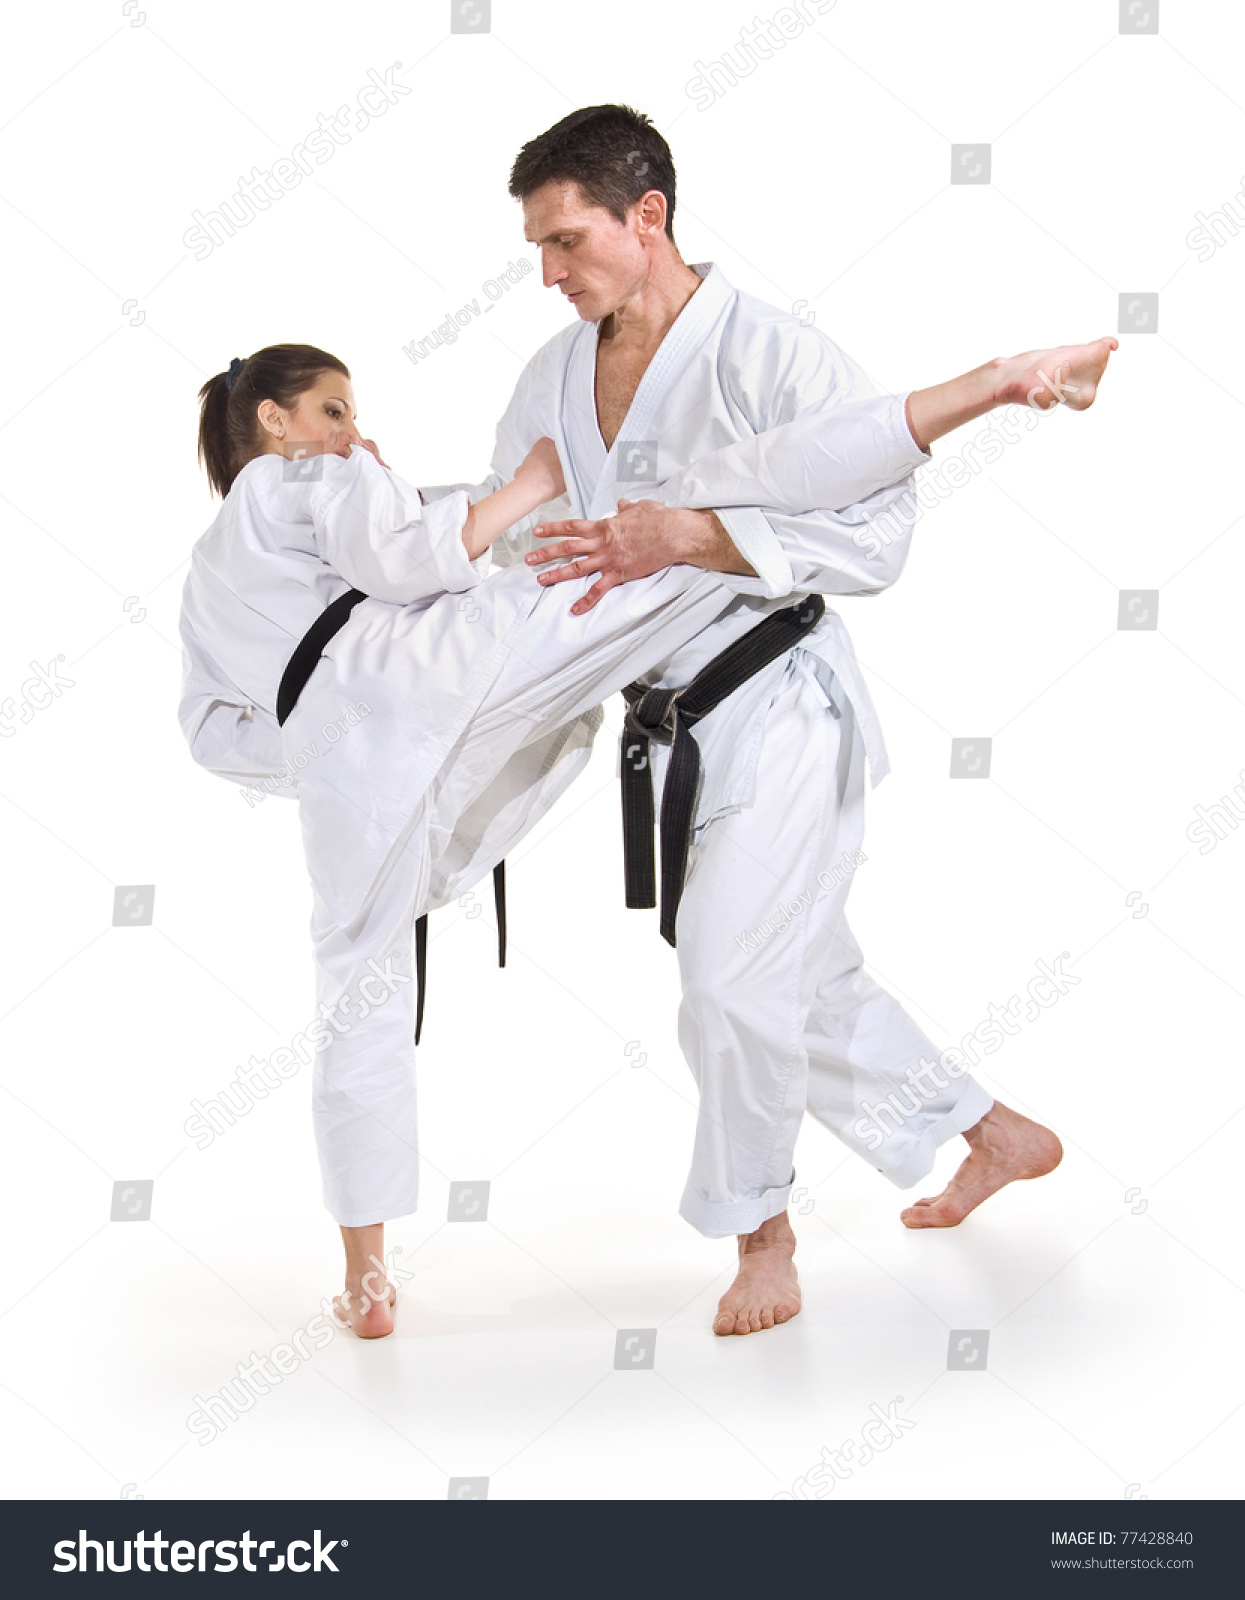 figure karate fighting stancehandtohand fighting woman training